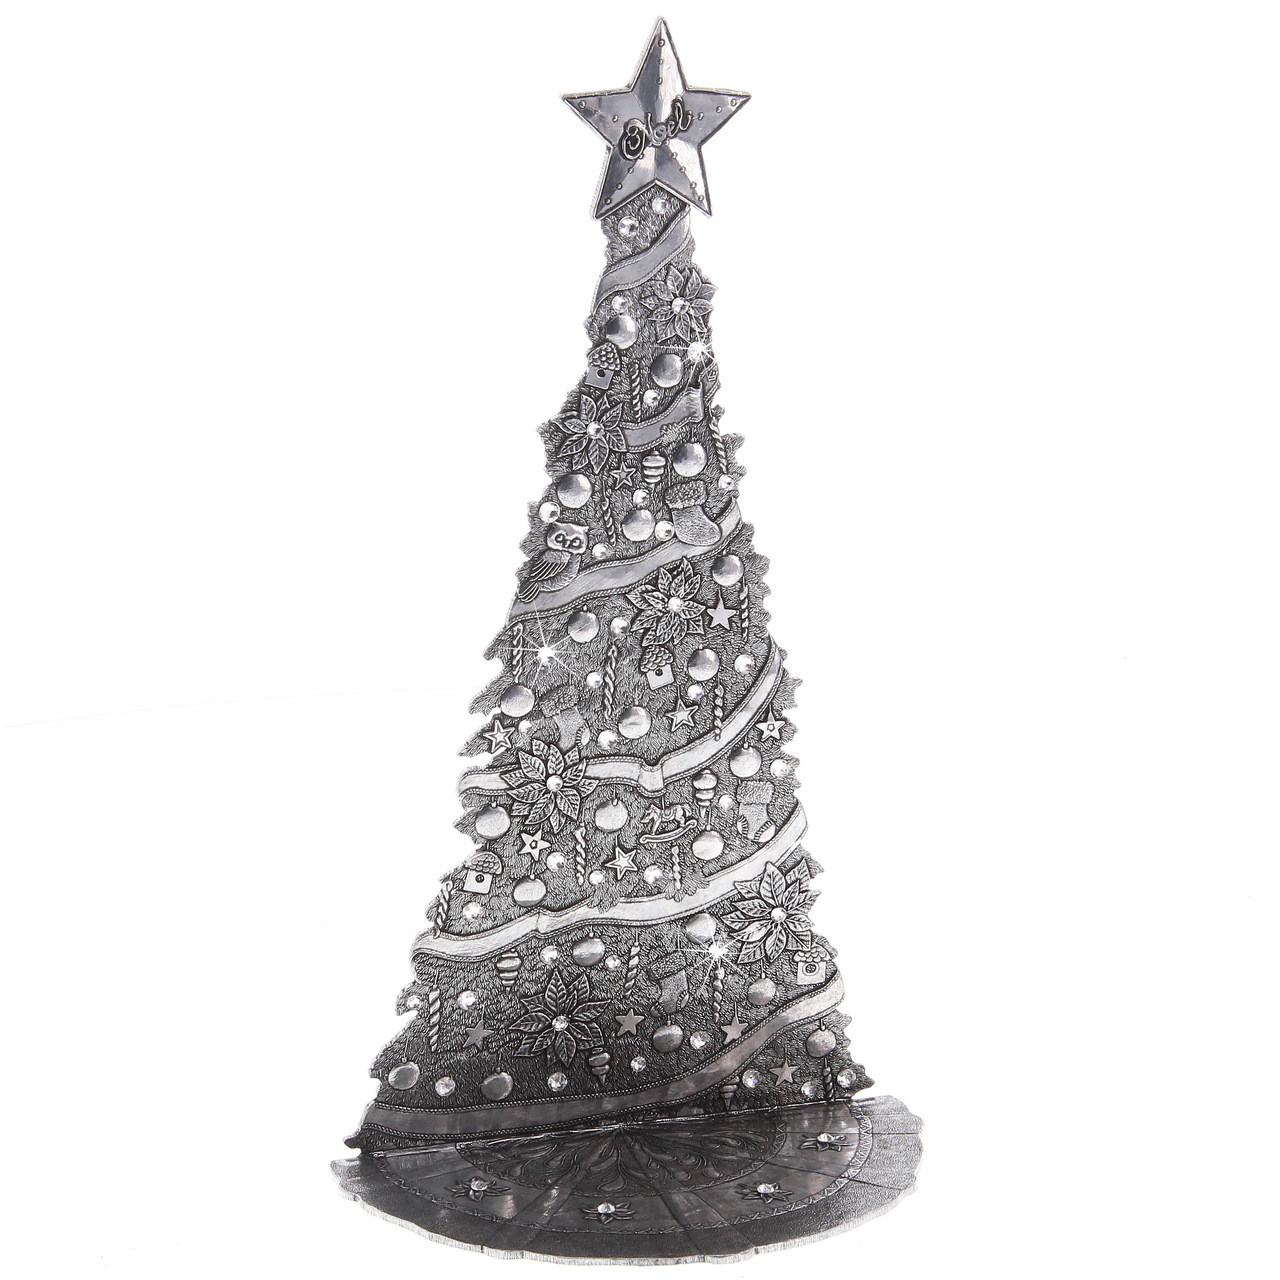 Christmas Tree Figurine Shop Holiday Decor At Wendell August Forge